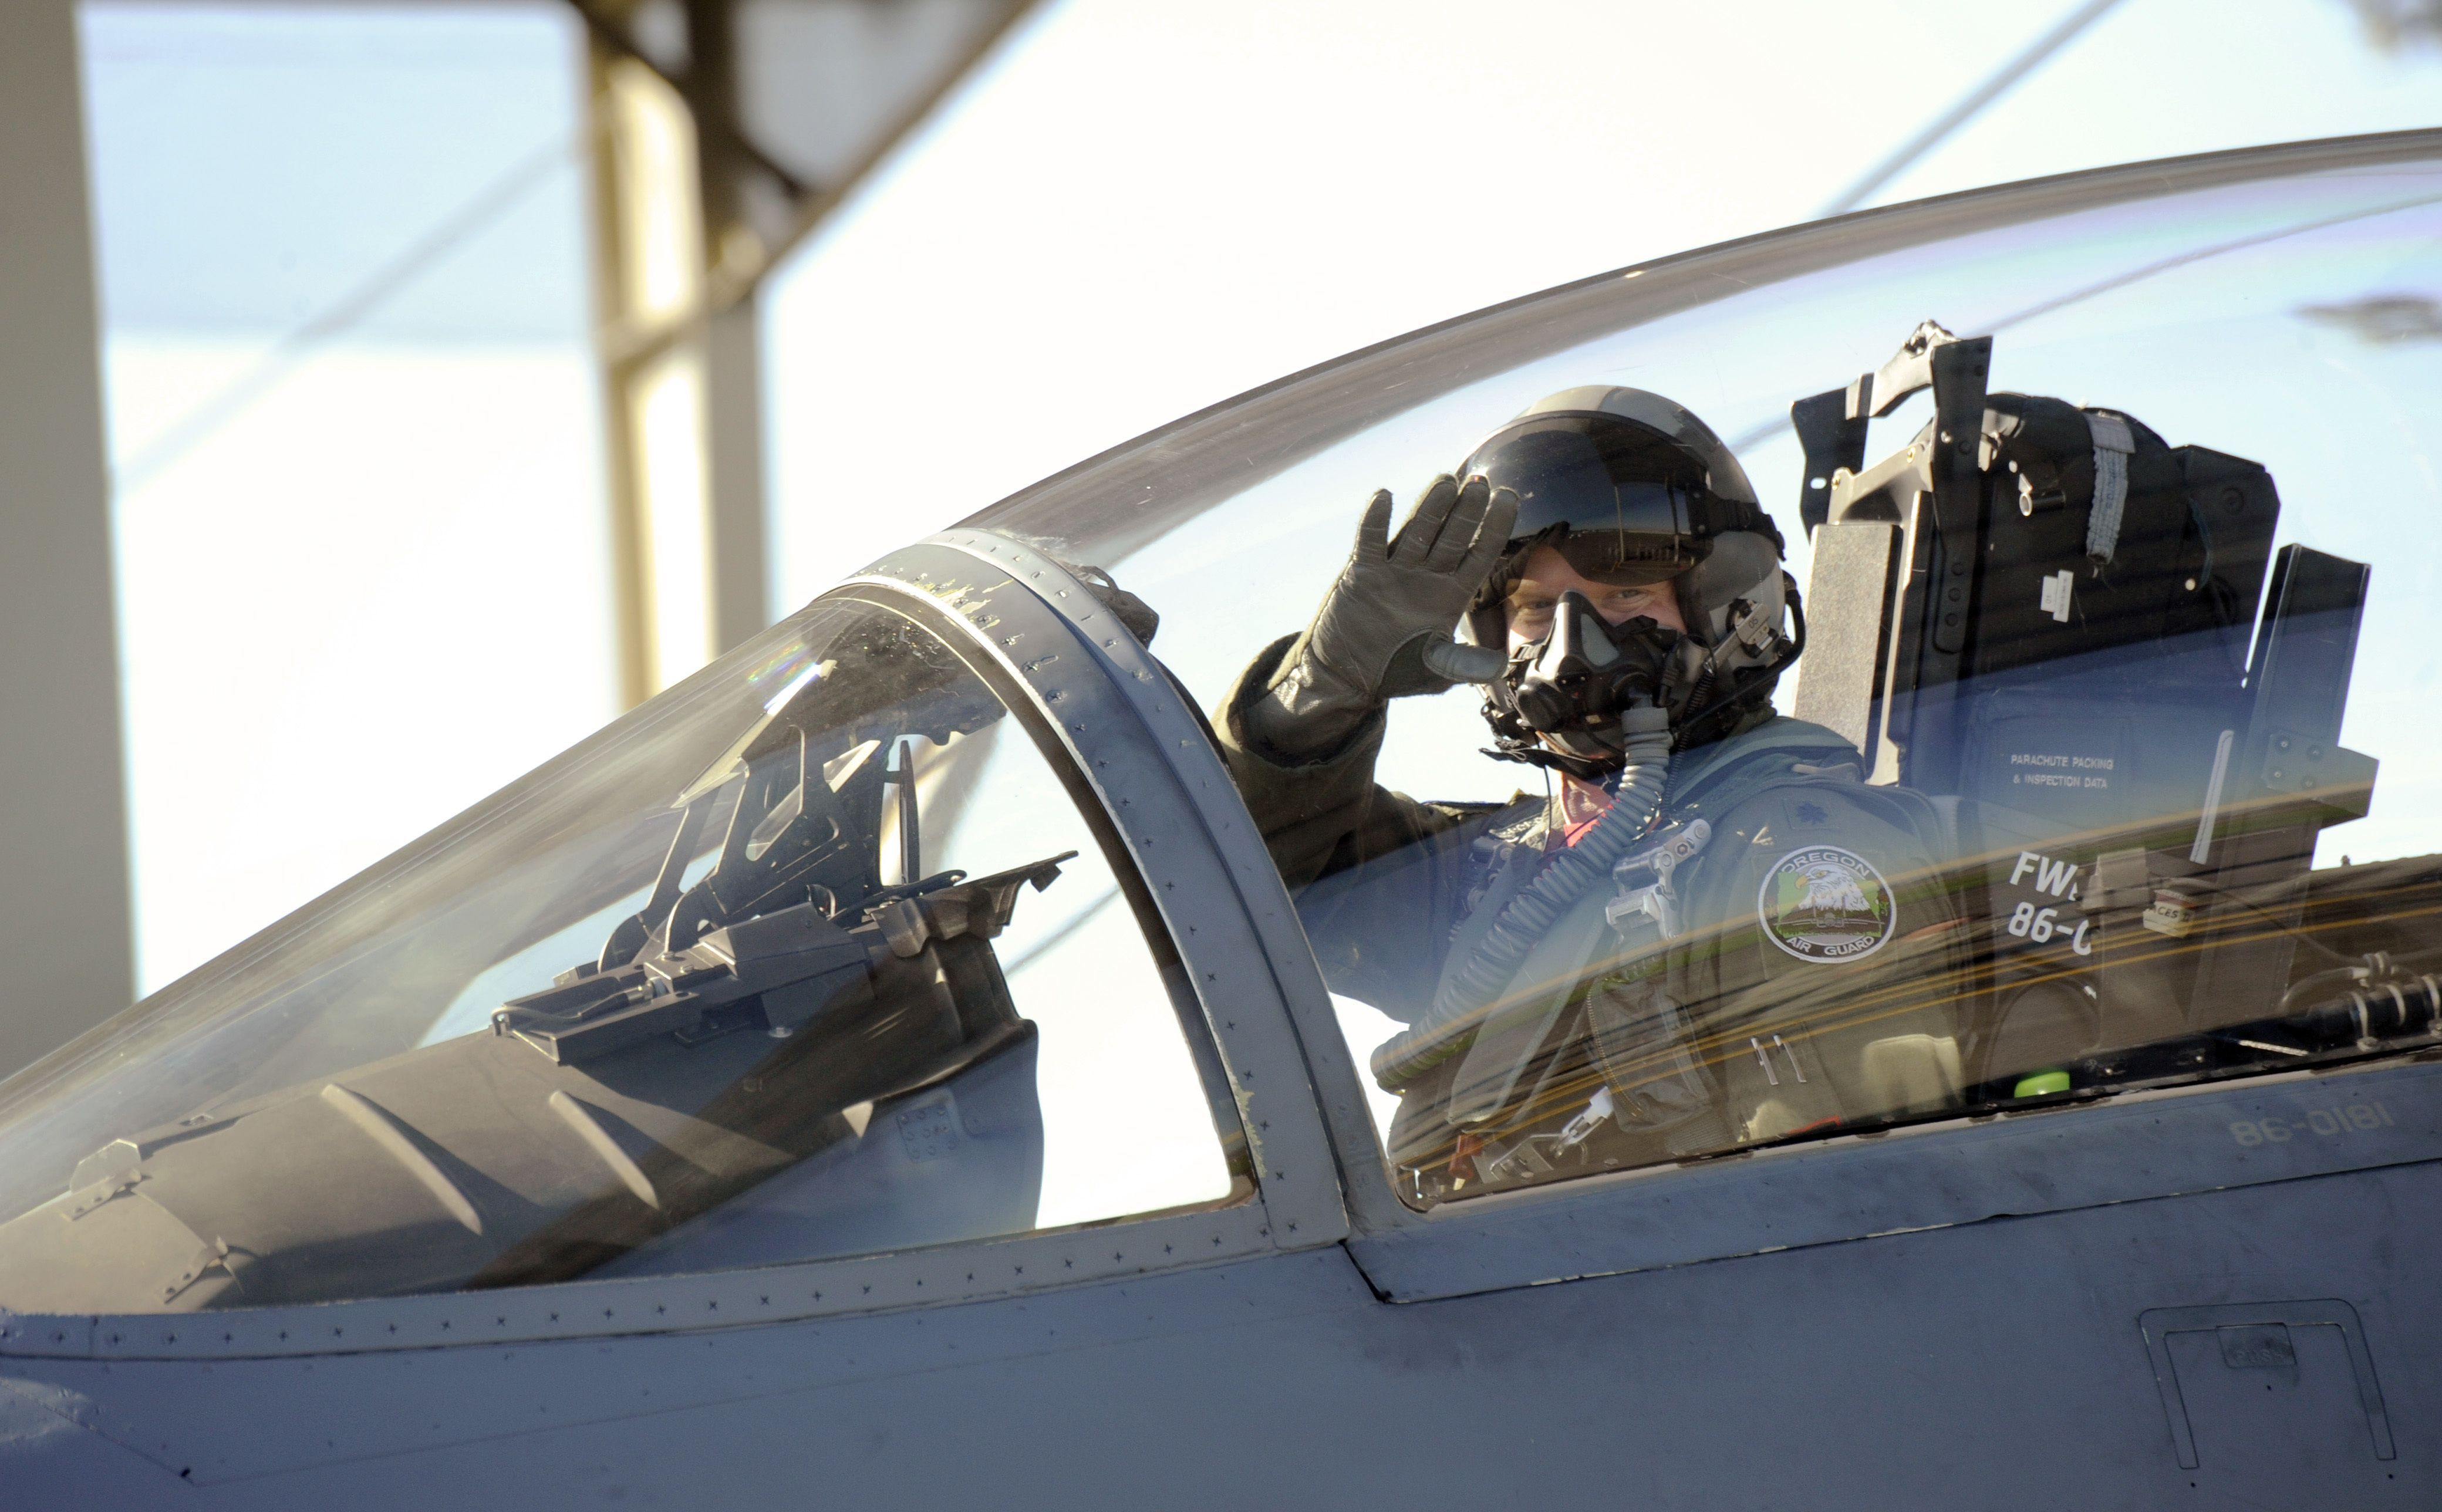 Everyone wants to be an air force pilot but do you know